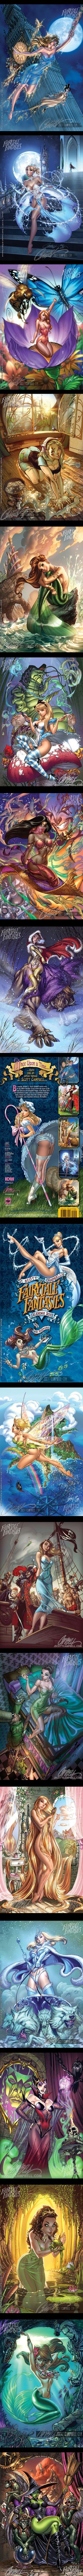 """Fairy Tale Fantasies"" is the new 2012 sexy calendar of the Disney Princesses Pin-Ups by the great illustrator J. Beautiful of course. Some a bit risque but beautiful! Art Disney, Disney Diy, Disney Girls, Disney Love, Disney Magic, Scott Campbell, Sexy Cartoons, Disney Cartoons, Pin Up"